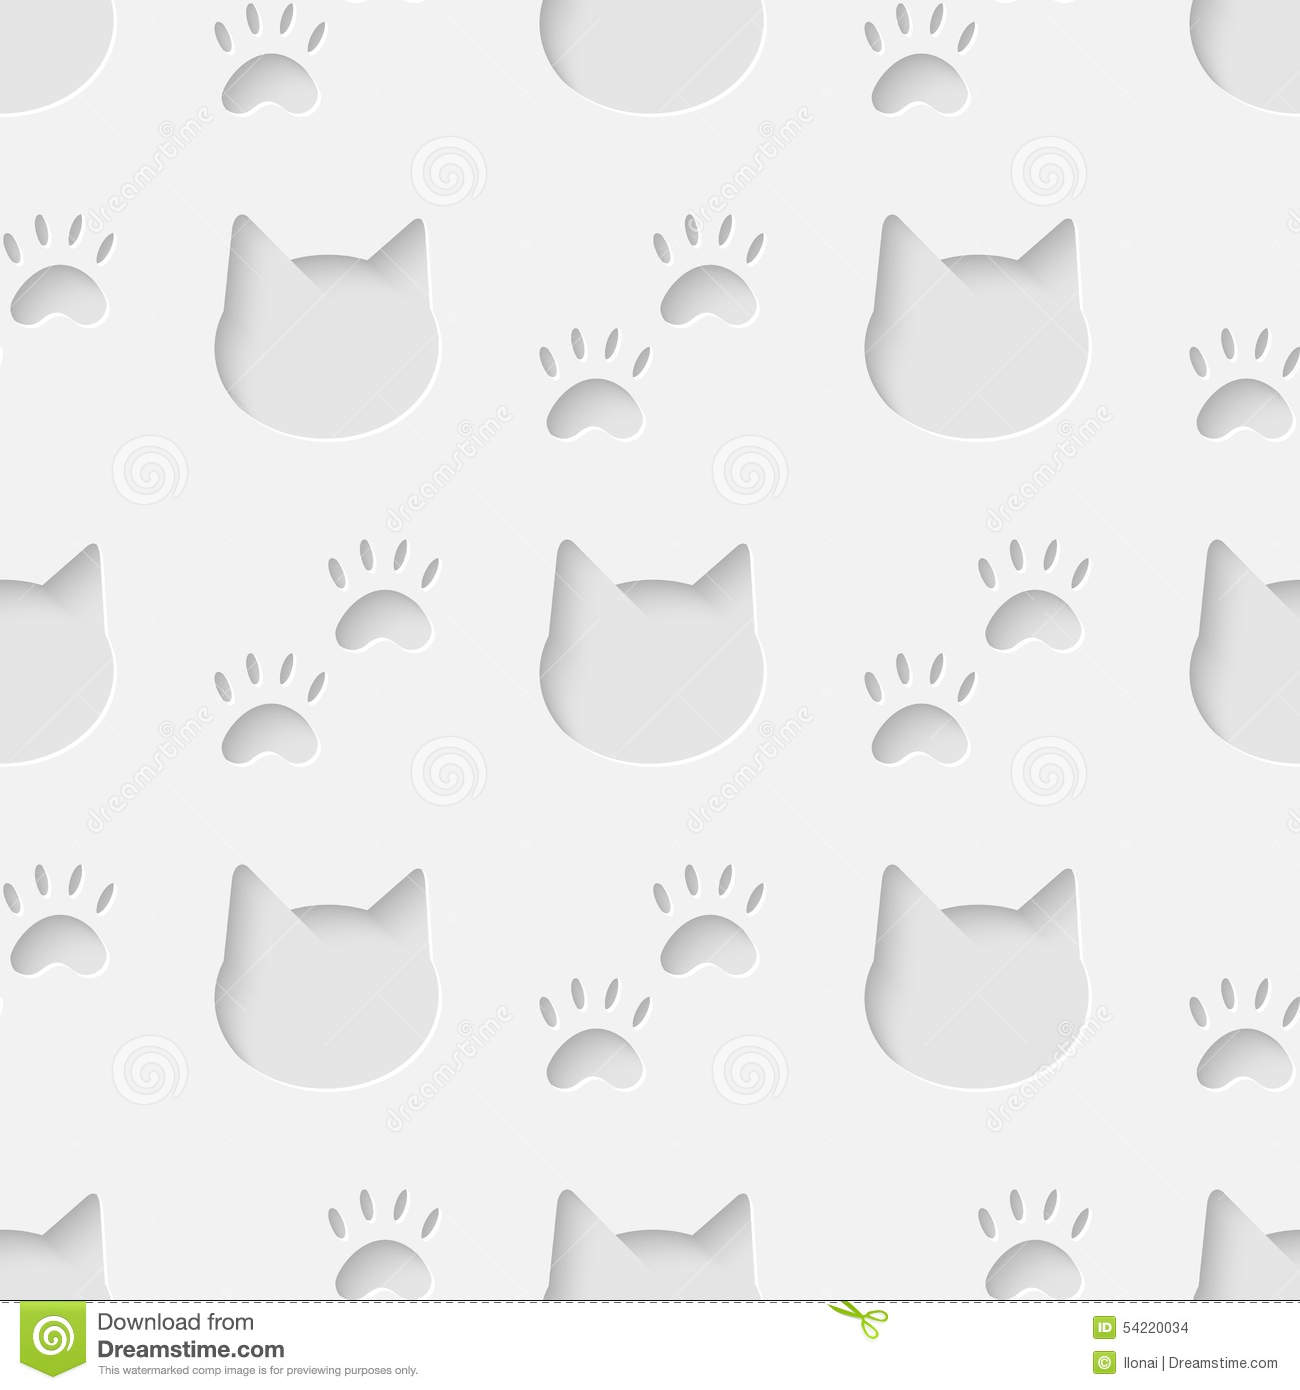 Cute Paw Print Wallpaper Cat Head And Paw Silhouette Seamless Pattern Stock Vector